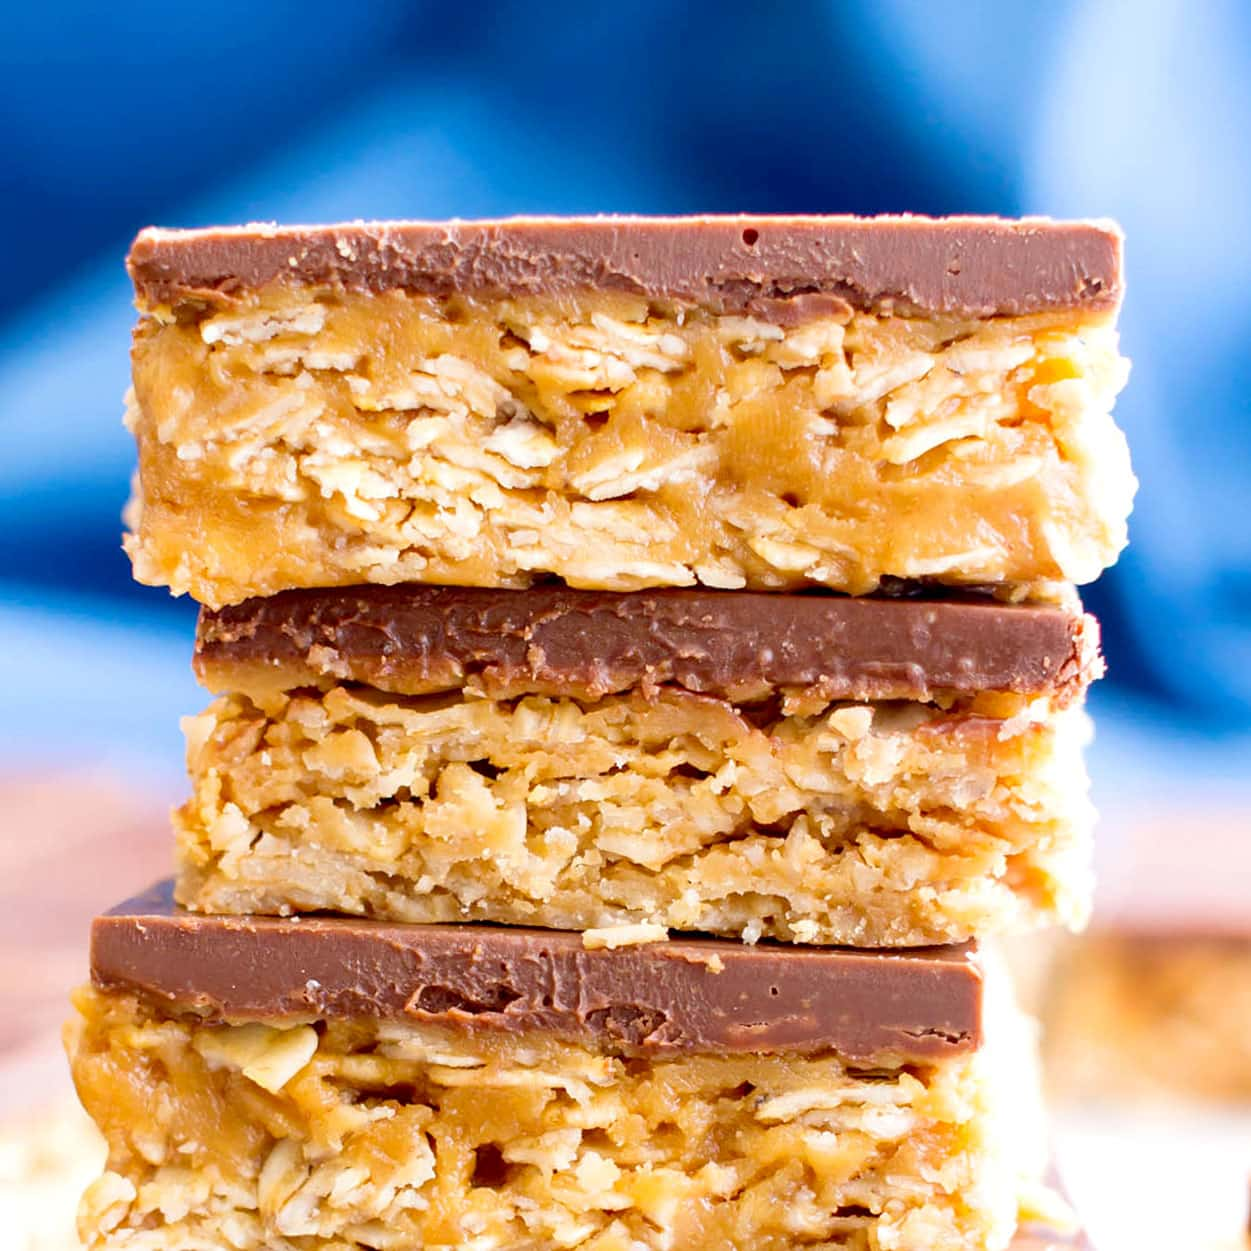 4 Ingredient No Bake Chocolate Peanut Butter Cup Oatmeal Bars